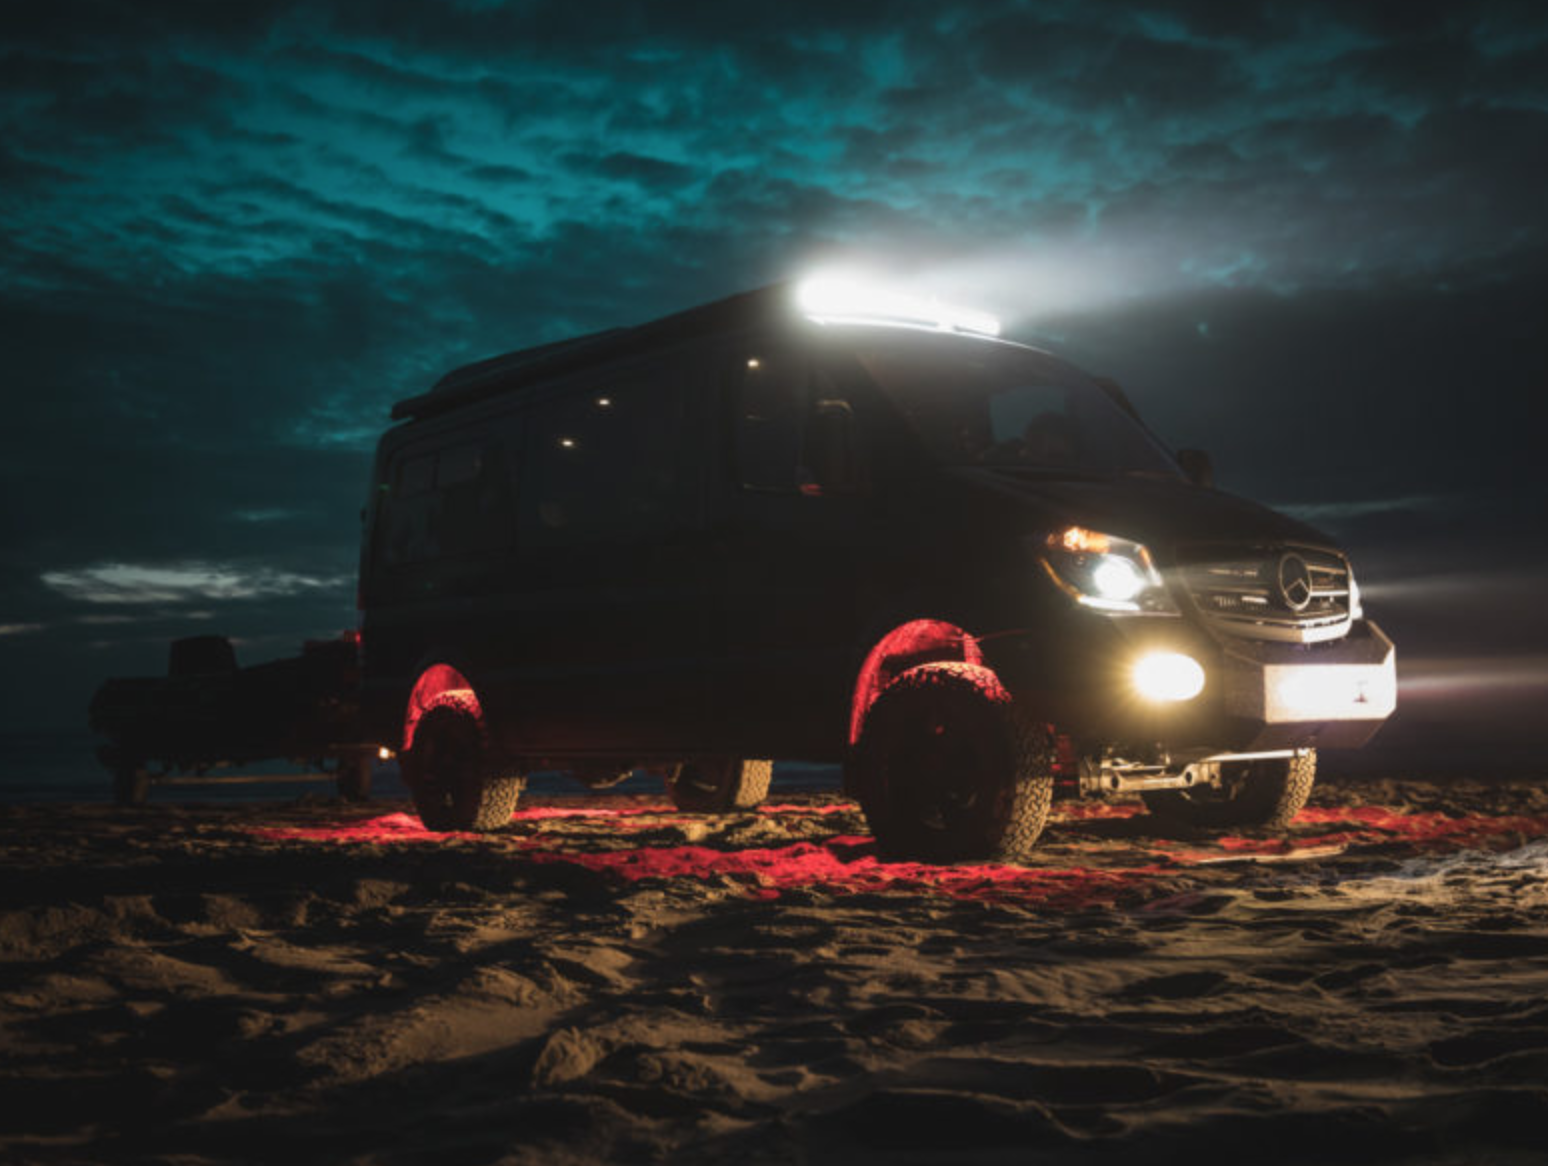 Mercedes Sprinter Conversions - Darkstar night